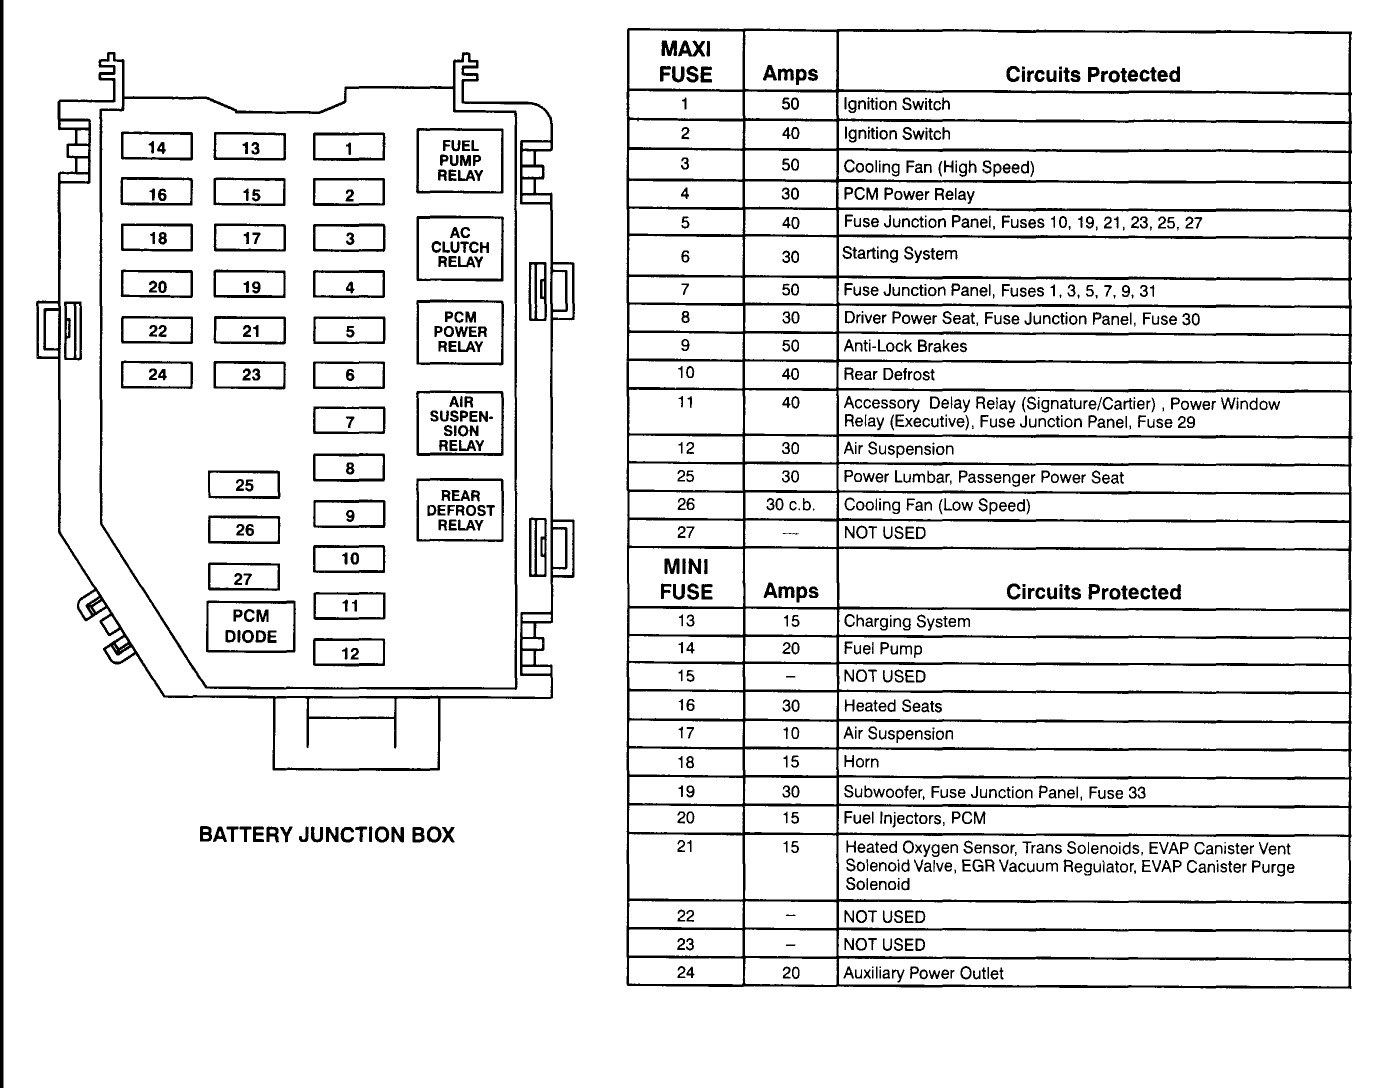 fuse box for 1998 lincoln town car